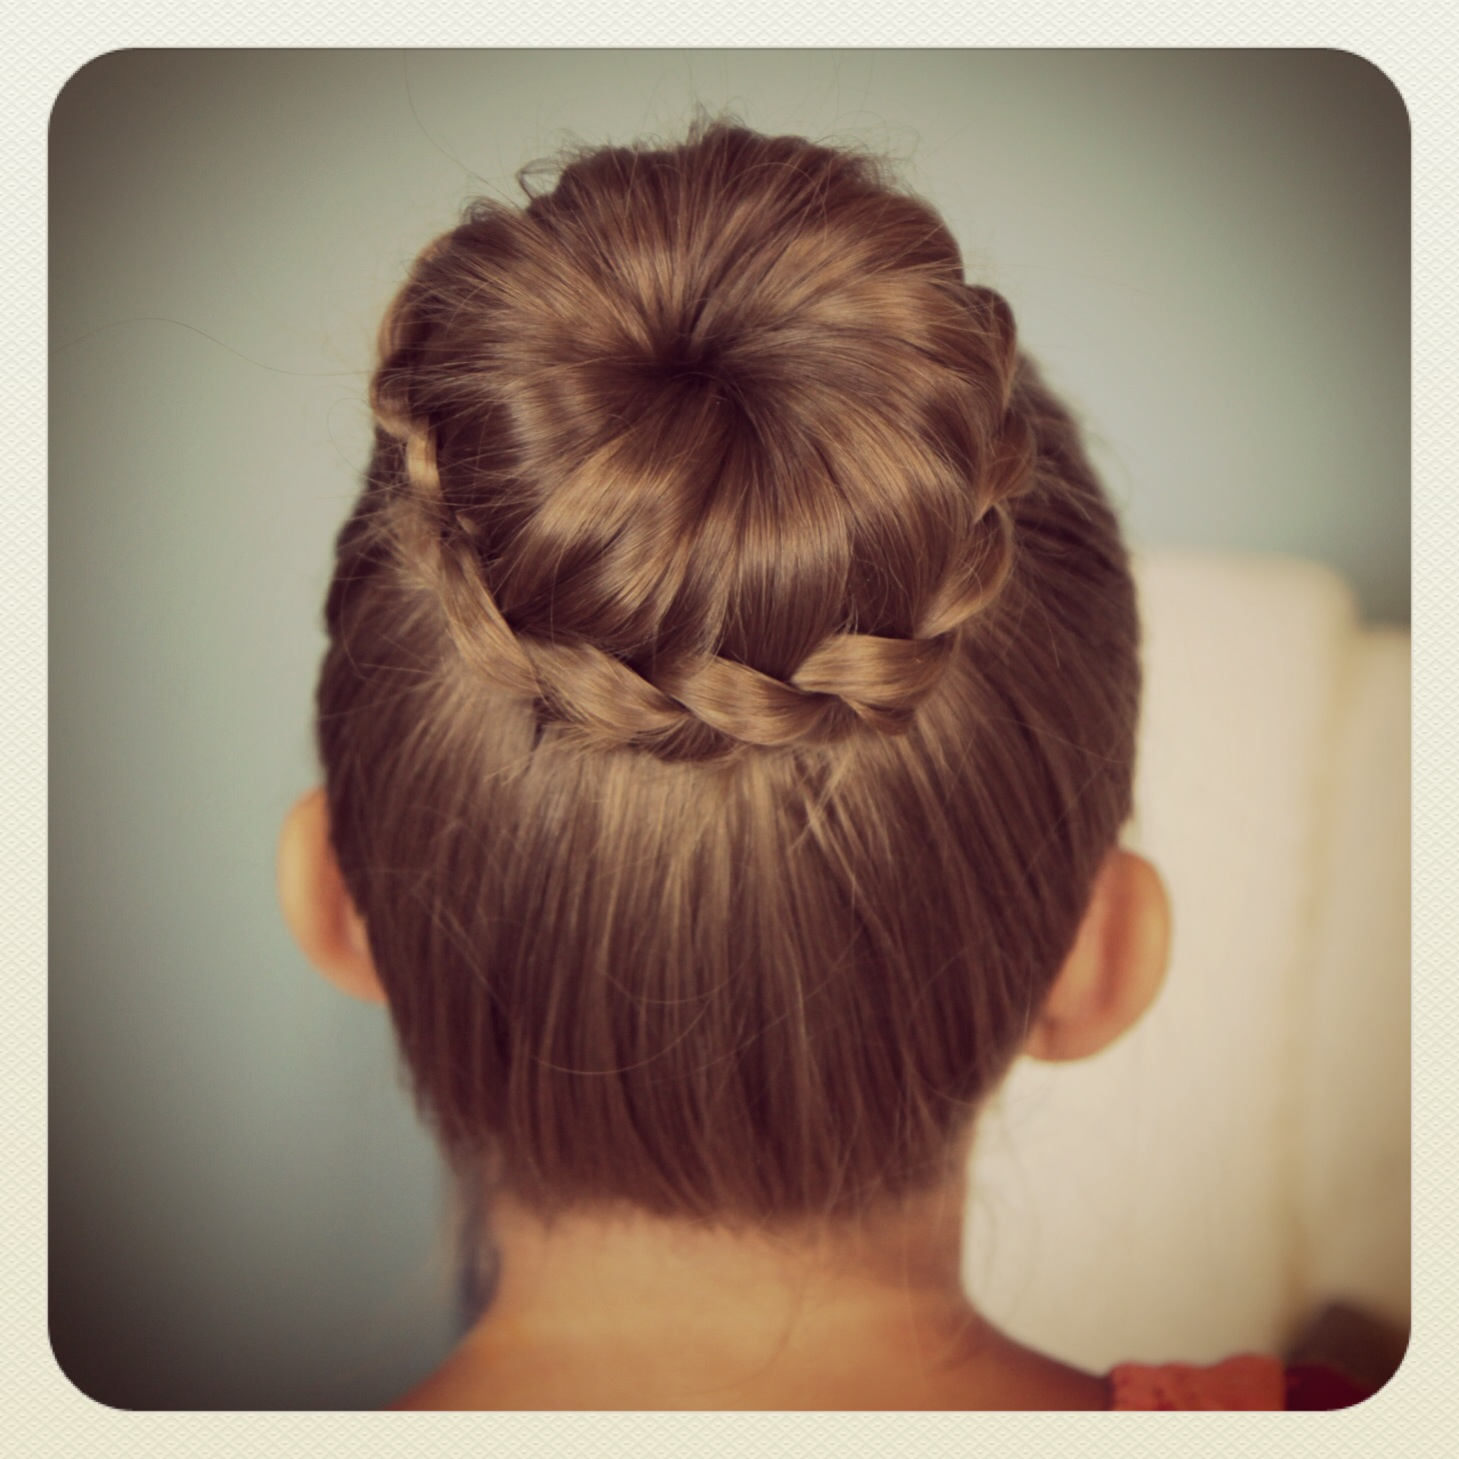 Cute Easy Hairstyles For School Dances : Lace braided bun cute updo hairstyles girls